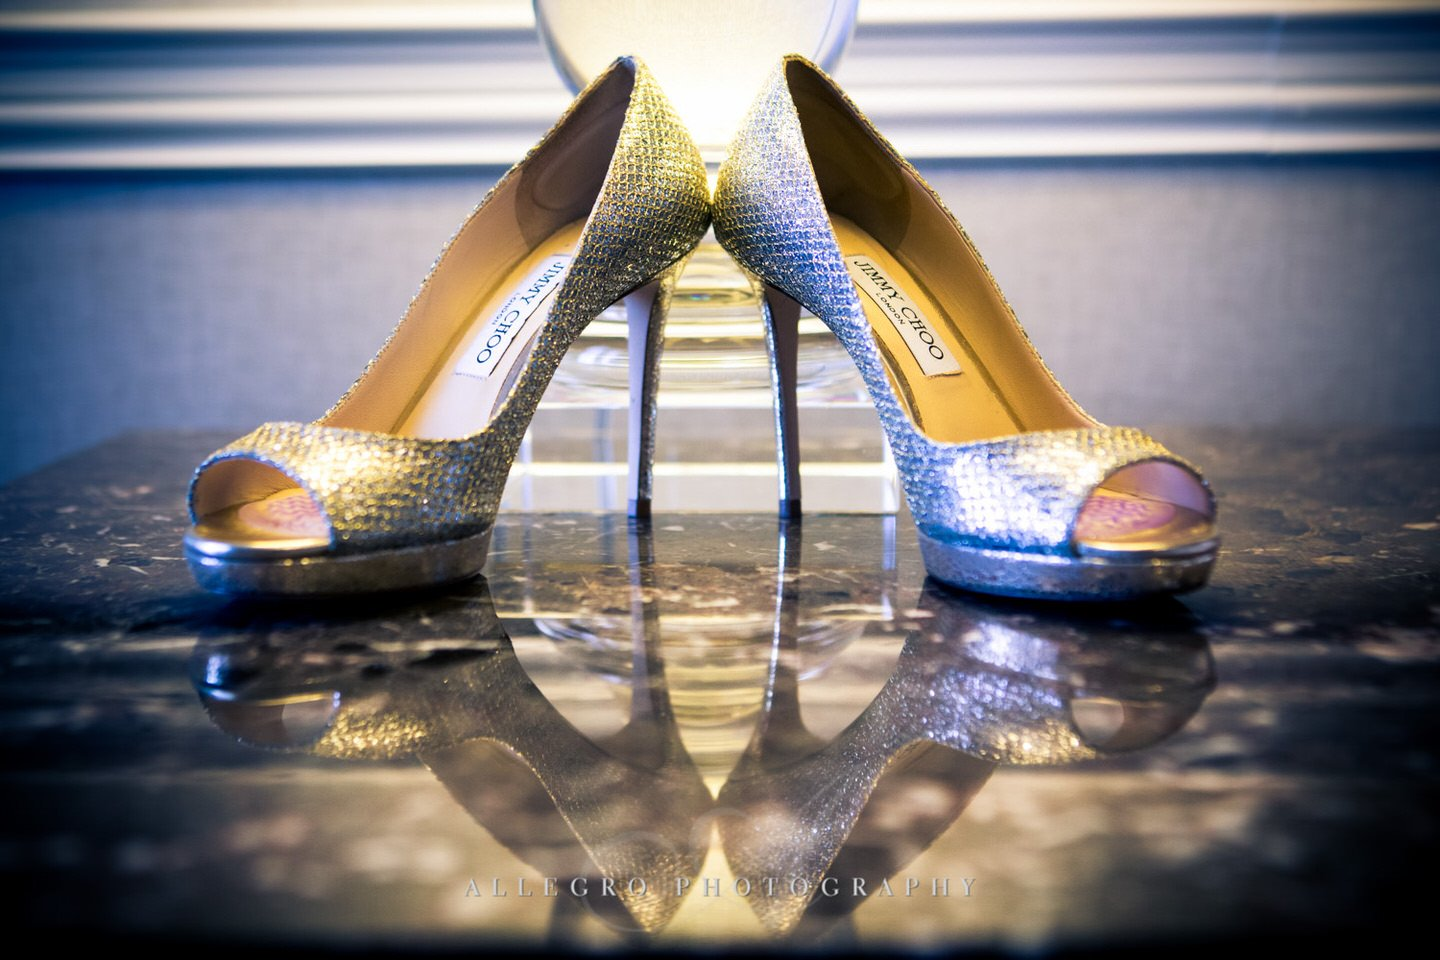 Jimmy Choo wedding shoes photo by Allegro Photography